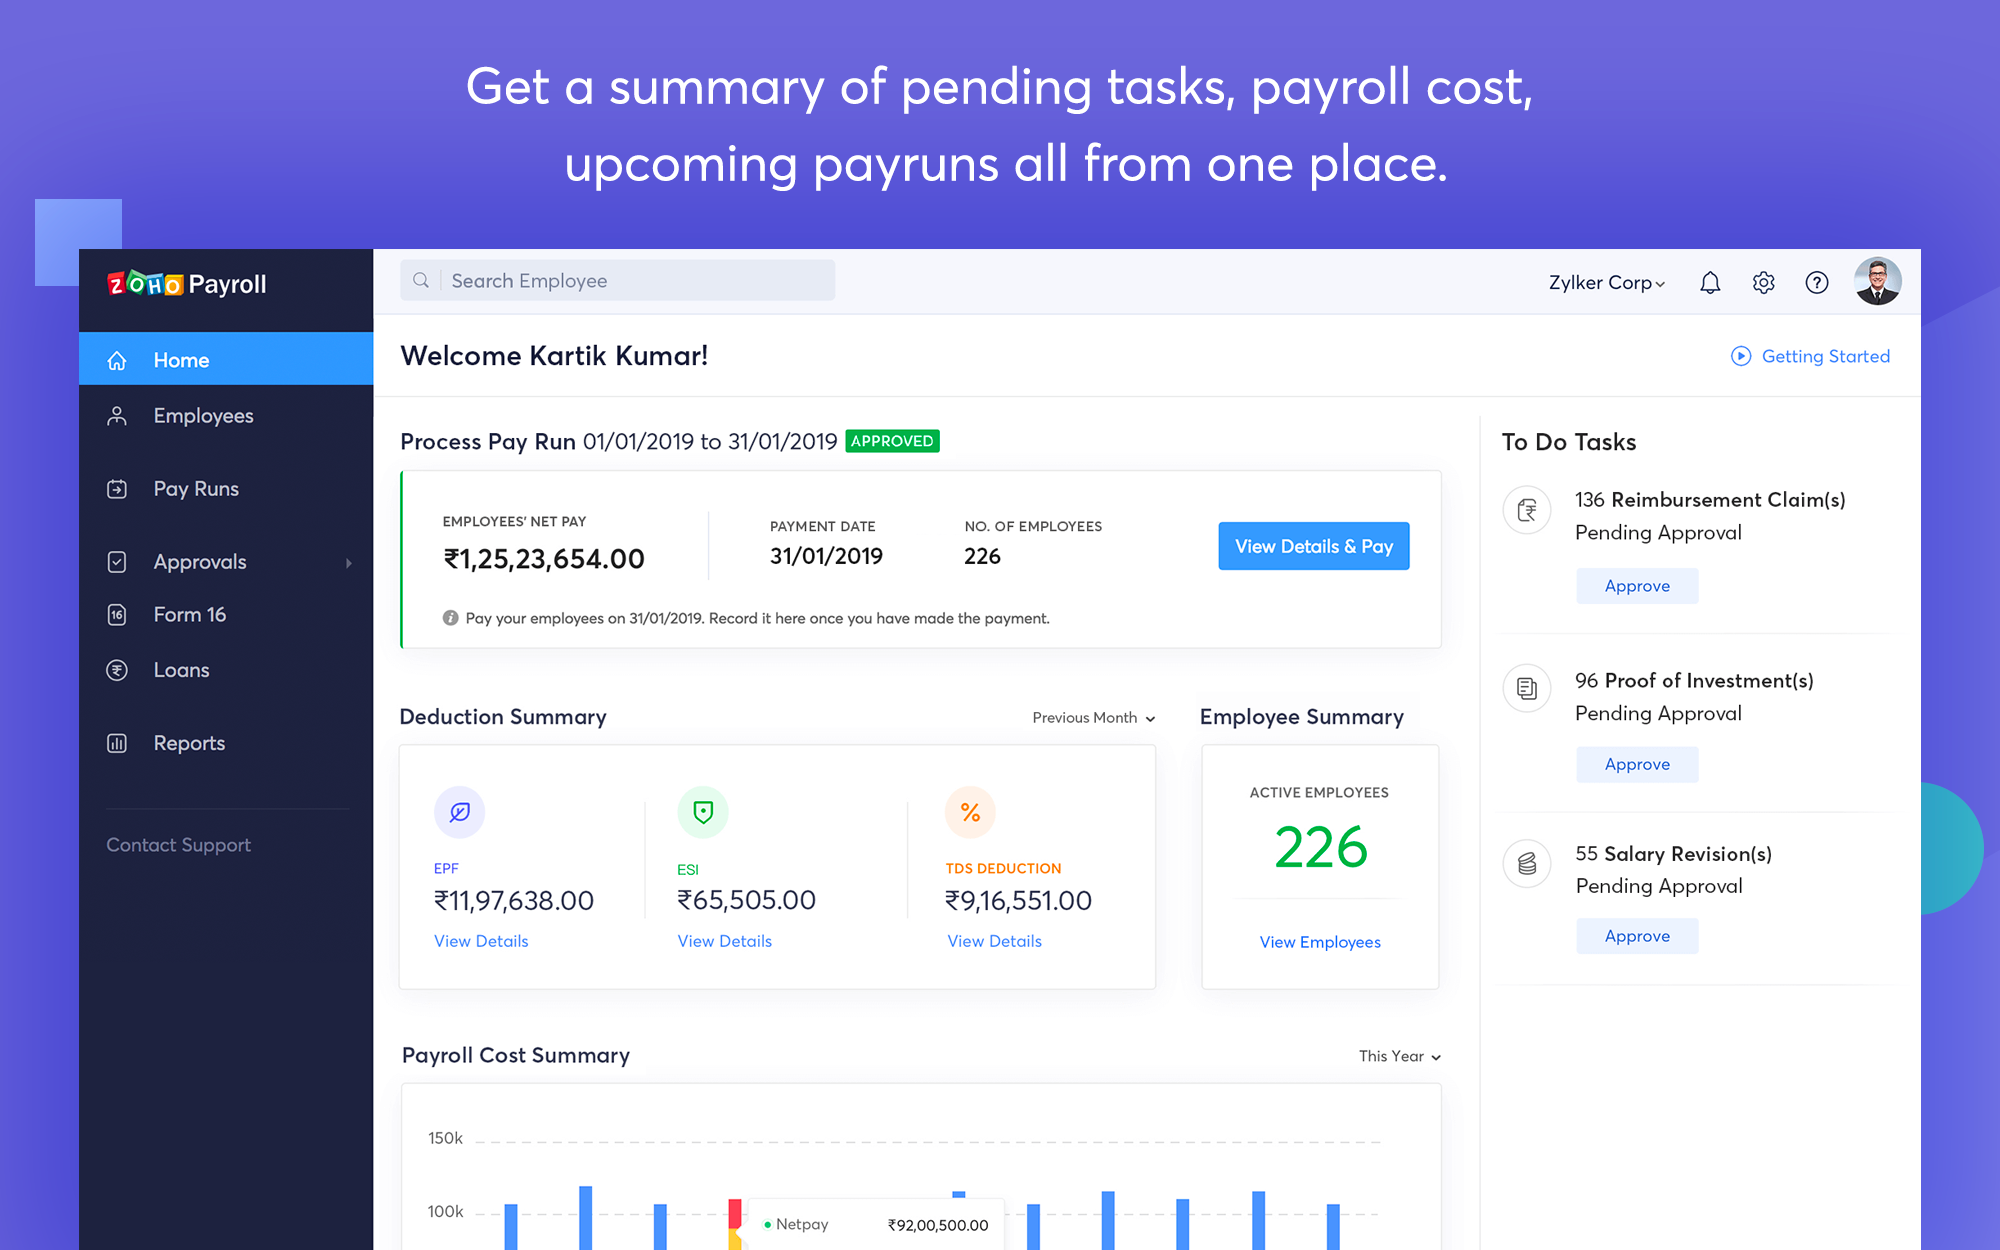 Zoho Payroll Dashboard Summary